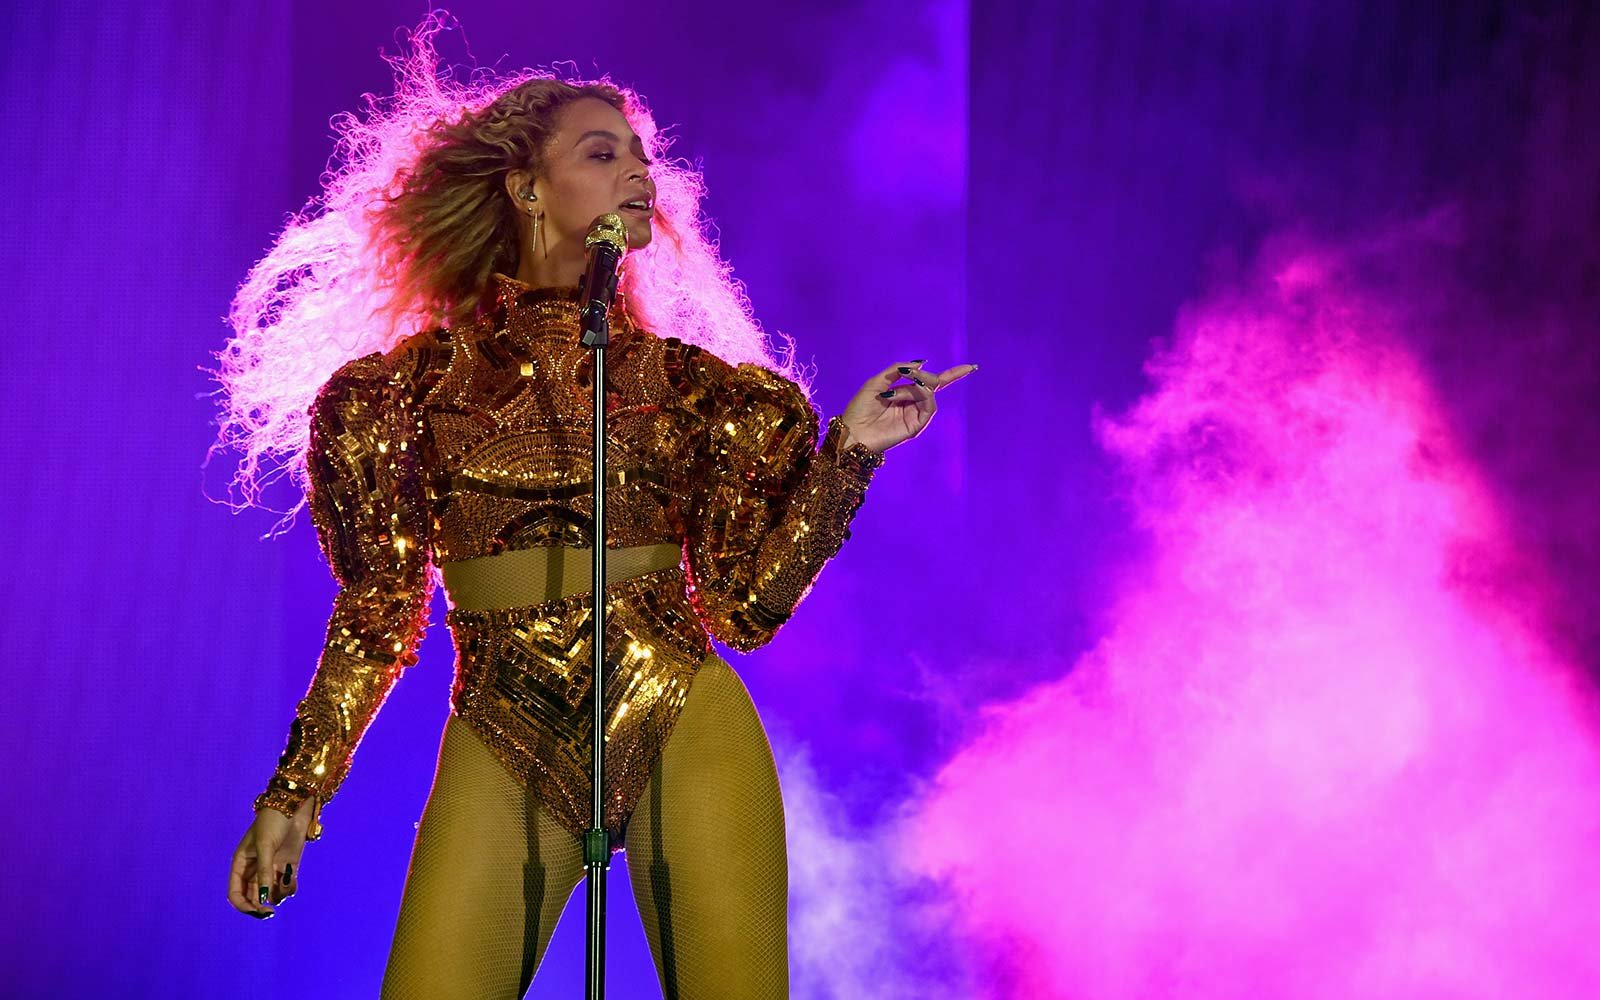 Beyonce, Eminem and The Weeknd to headline Coachella 2018